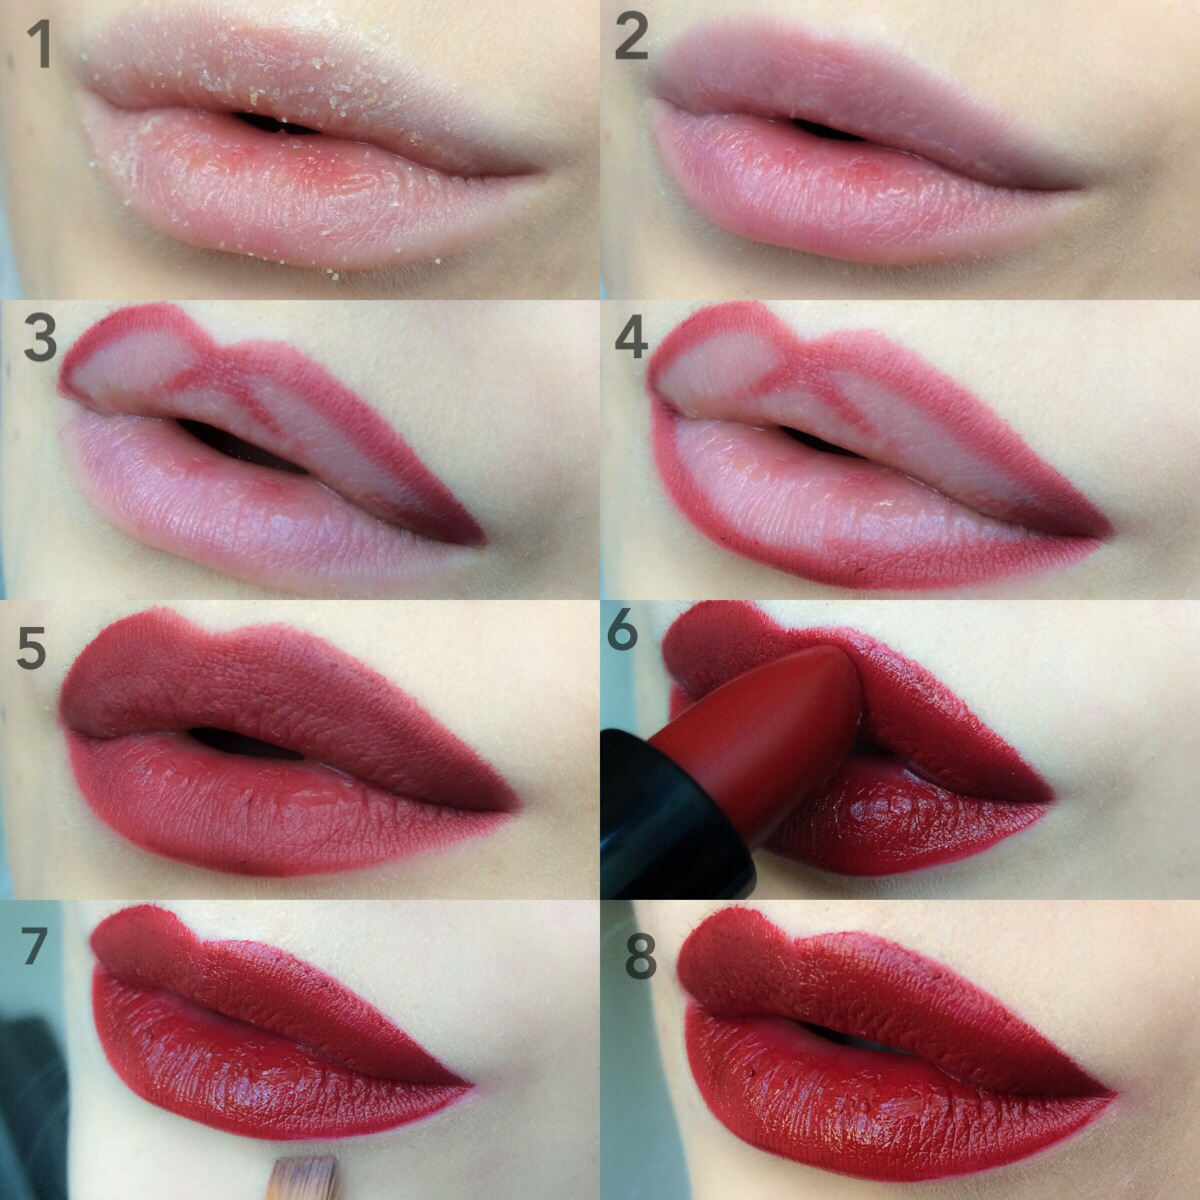 BlogForShops beauty tips&tricks the perfect red lips Photocredits Punchingpictures